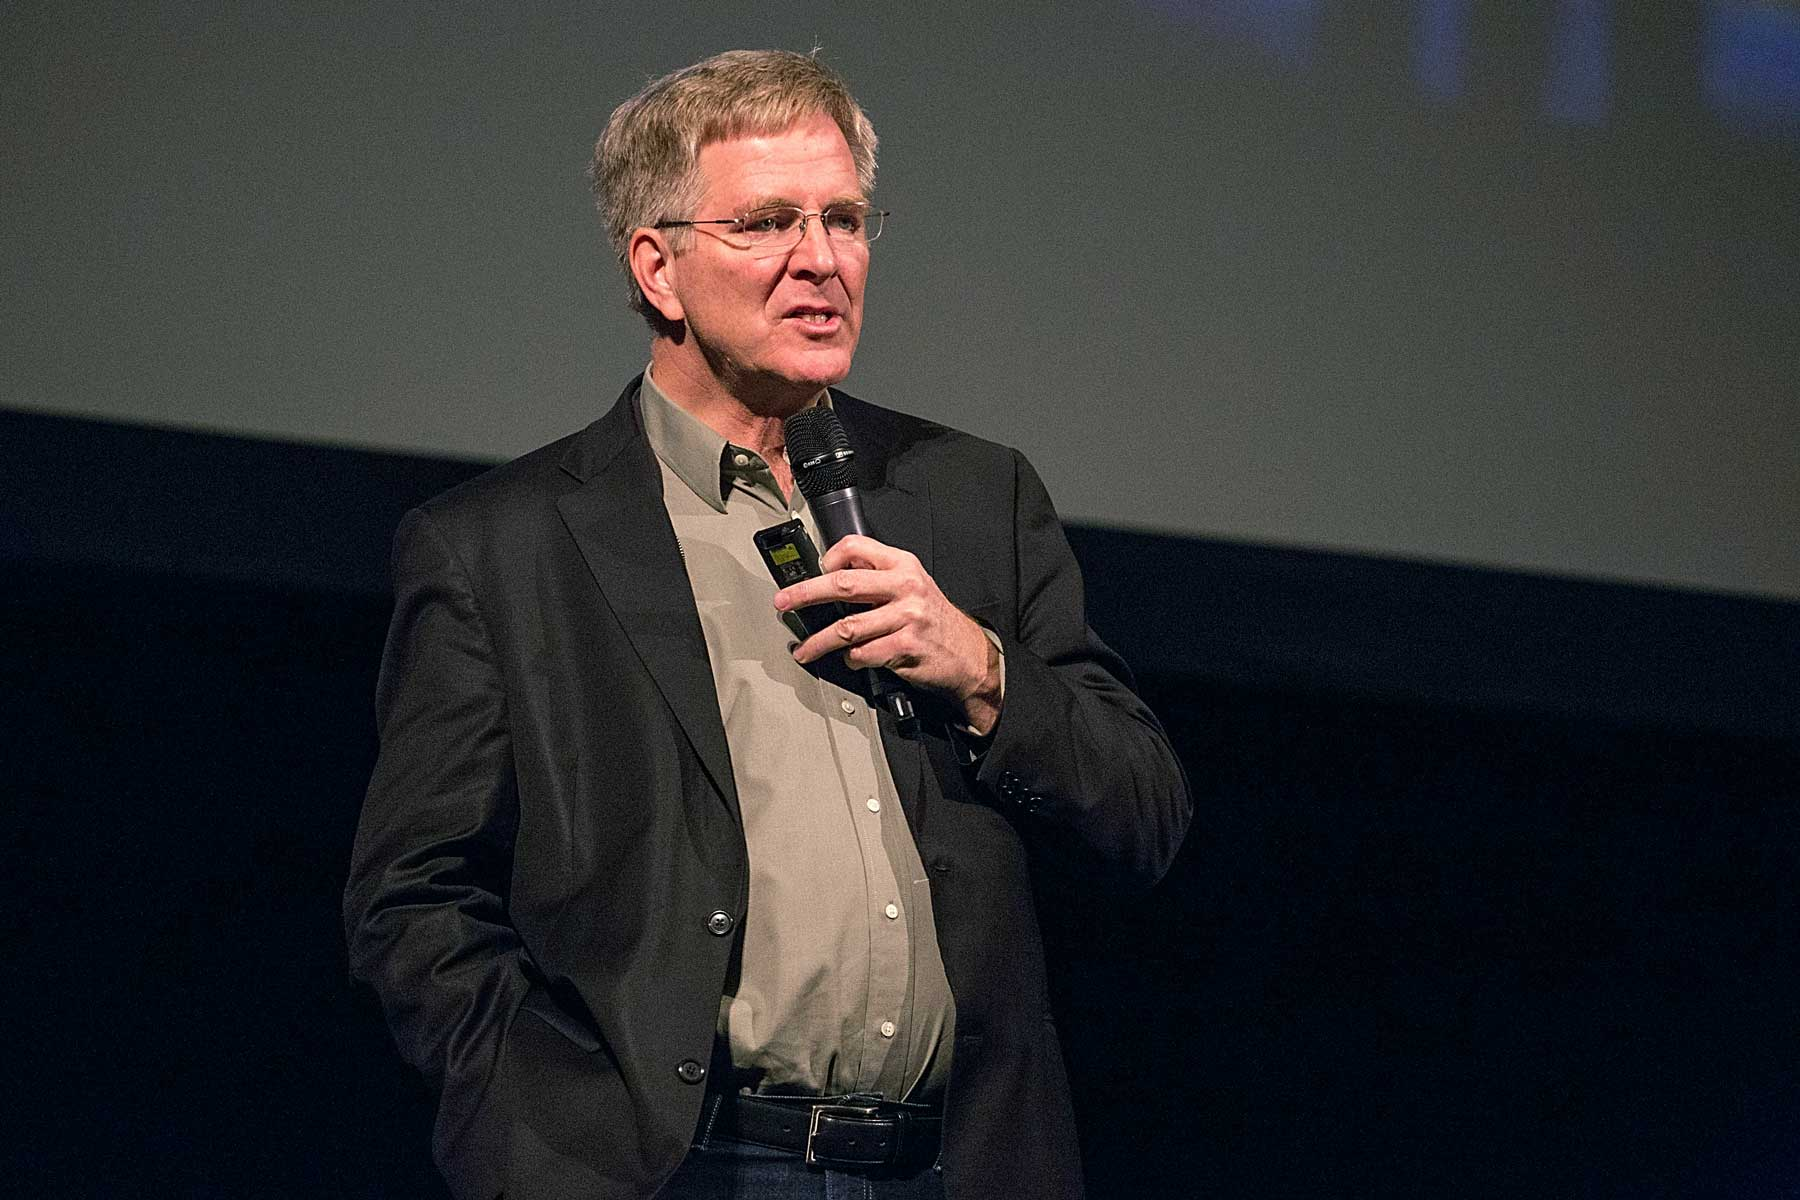 Travel author and TV personality Rick Steves speaks on stage at The Paramount Theatre on December 3, 2014 in Austin, Texas.